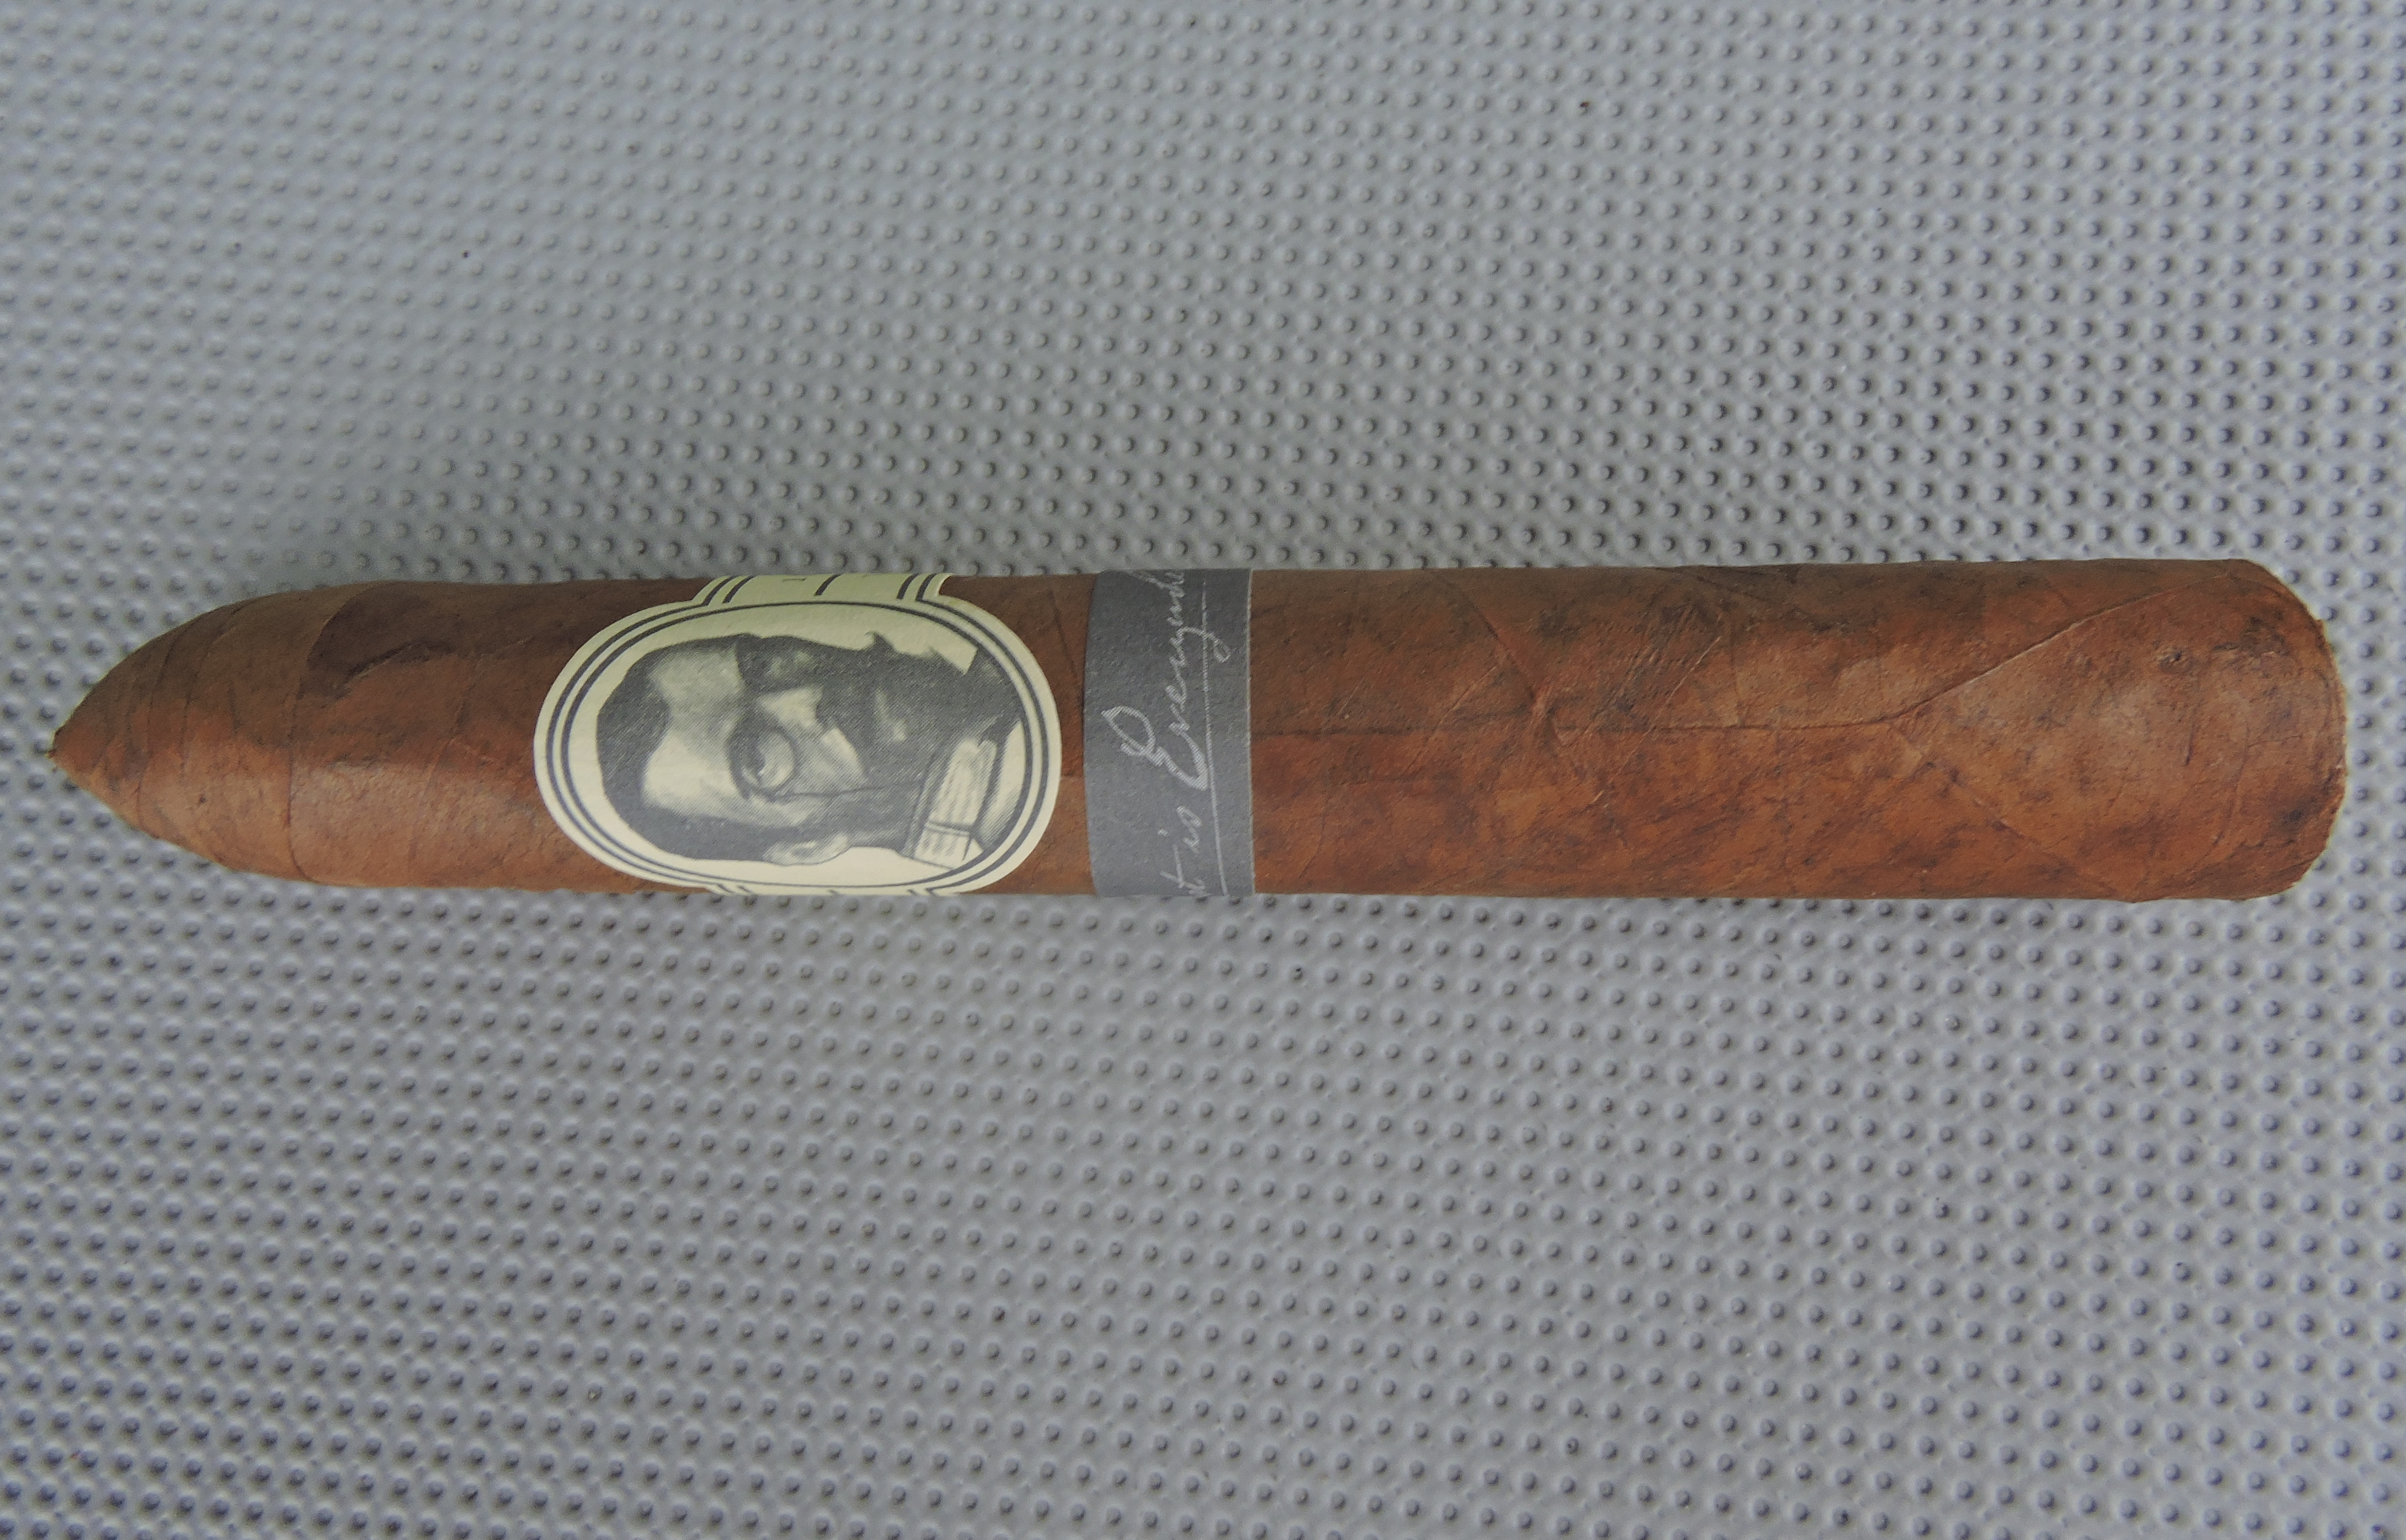 Agile Cigar Review: Caldwell The Last Tsar Belicoso